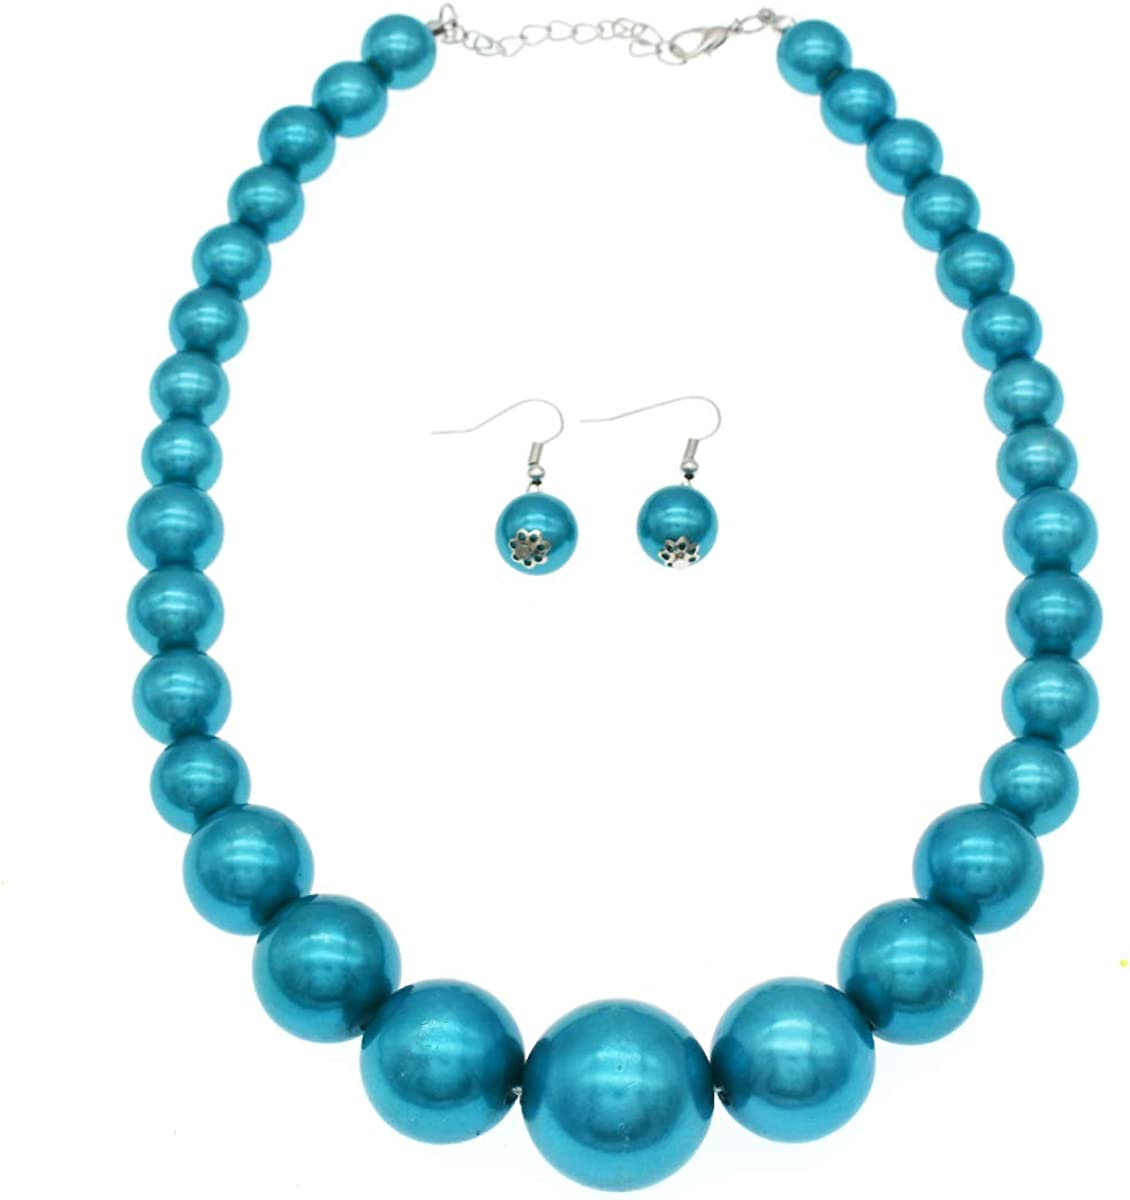 Faux Big Pearl Necklace for Women Chunky Pear Necklace and Earring Set Pearl Statement Necklaces Costume Jewelry for Party